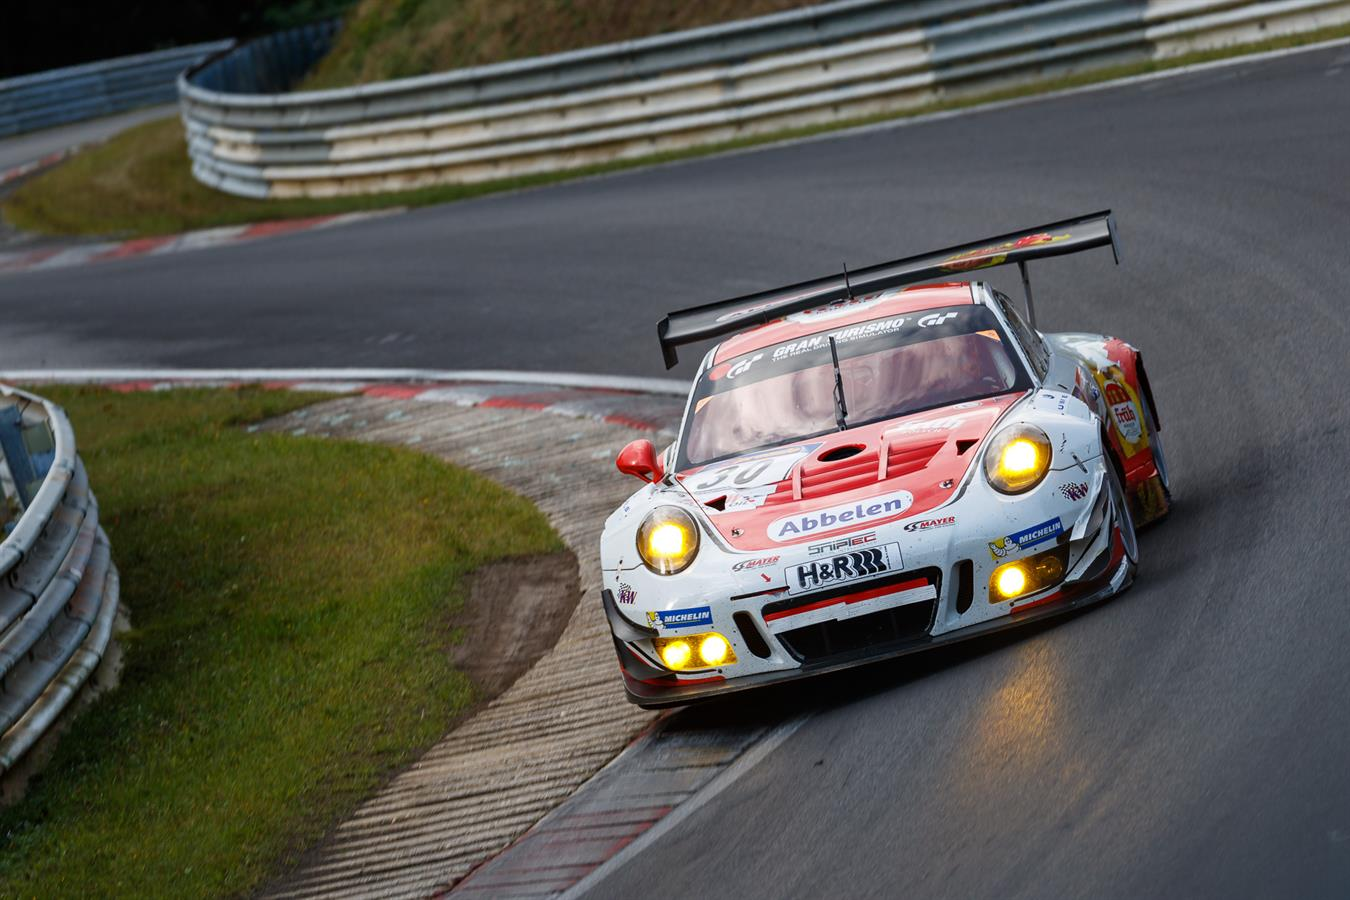 VLN 2016: Race 9 (October 8th)